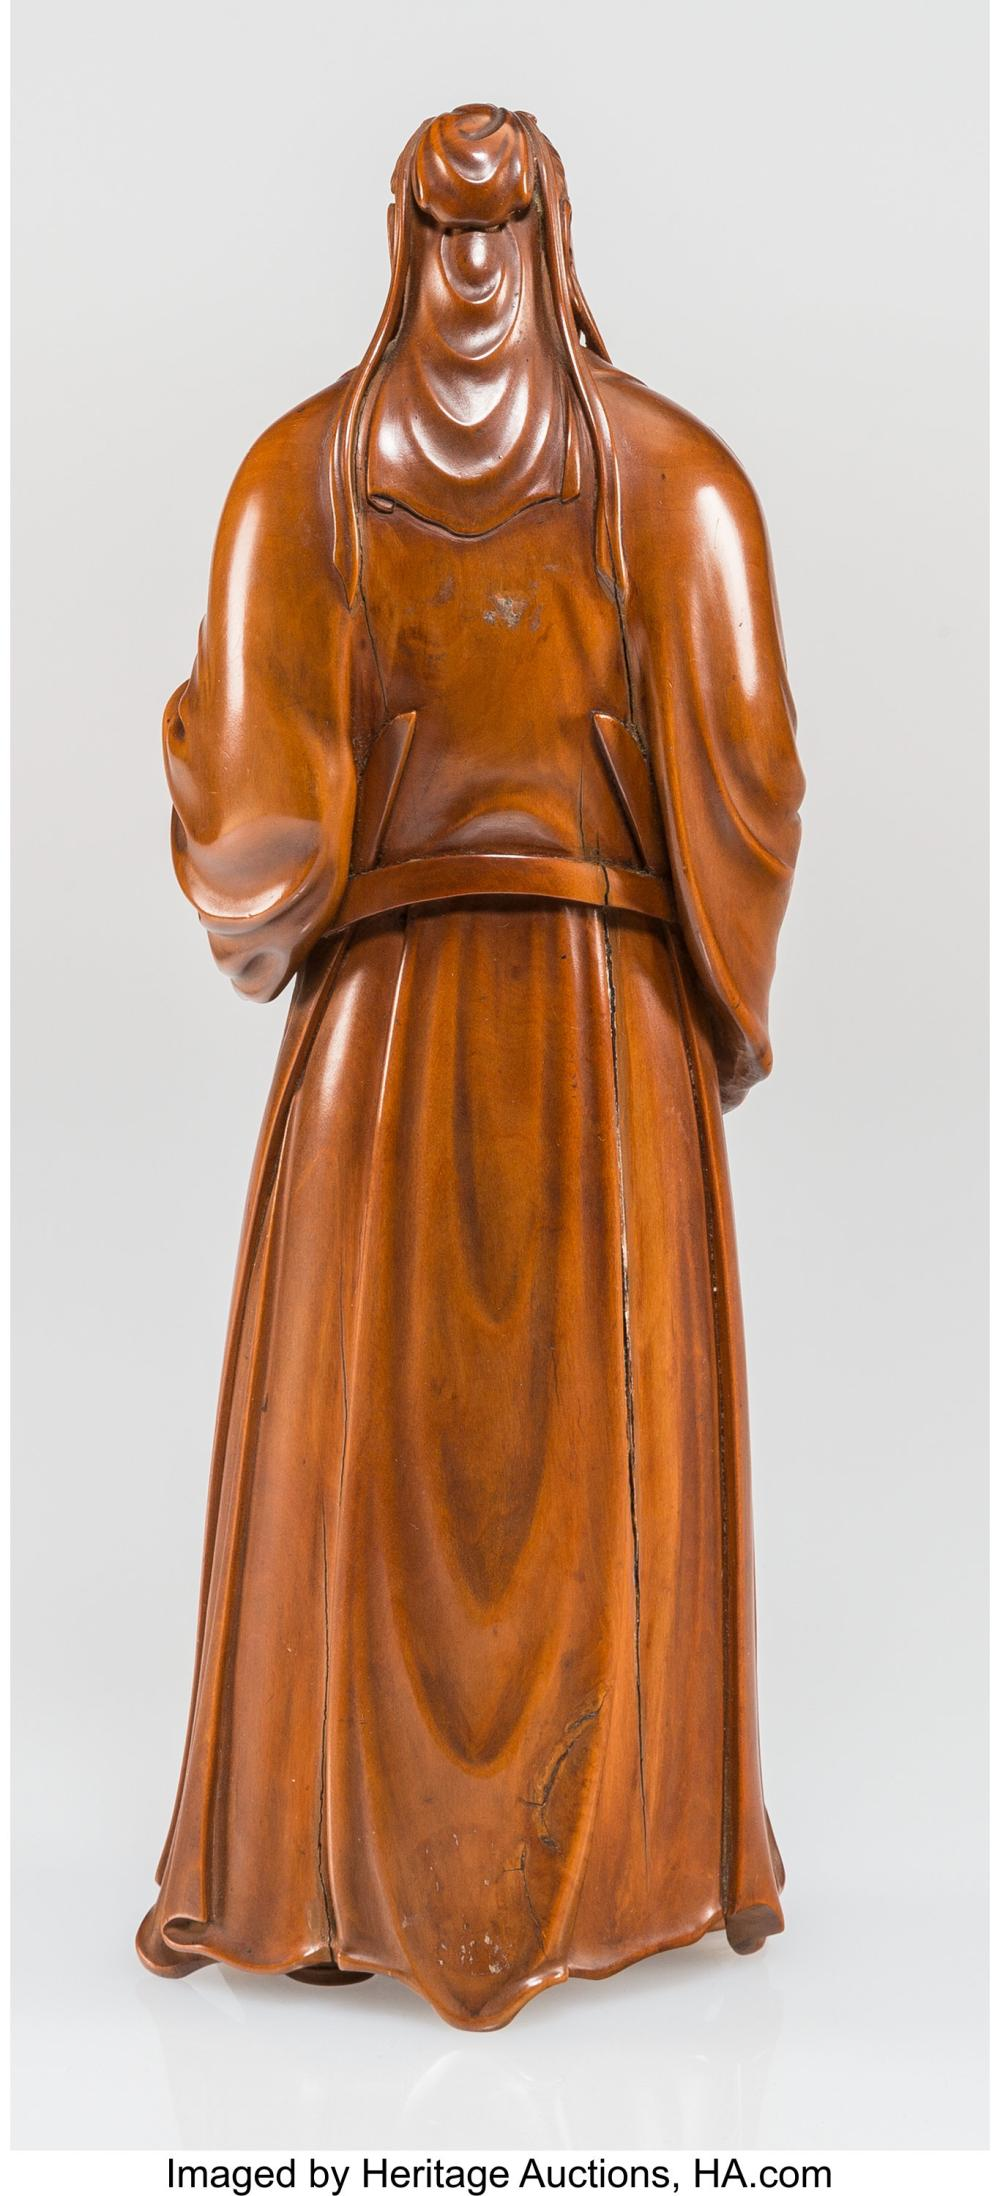 Lot 21256: A Chinese Boxwood and Mother-of-Pearl Inlay Scholar Figure, 20th century 11-1/2